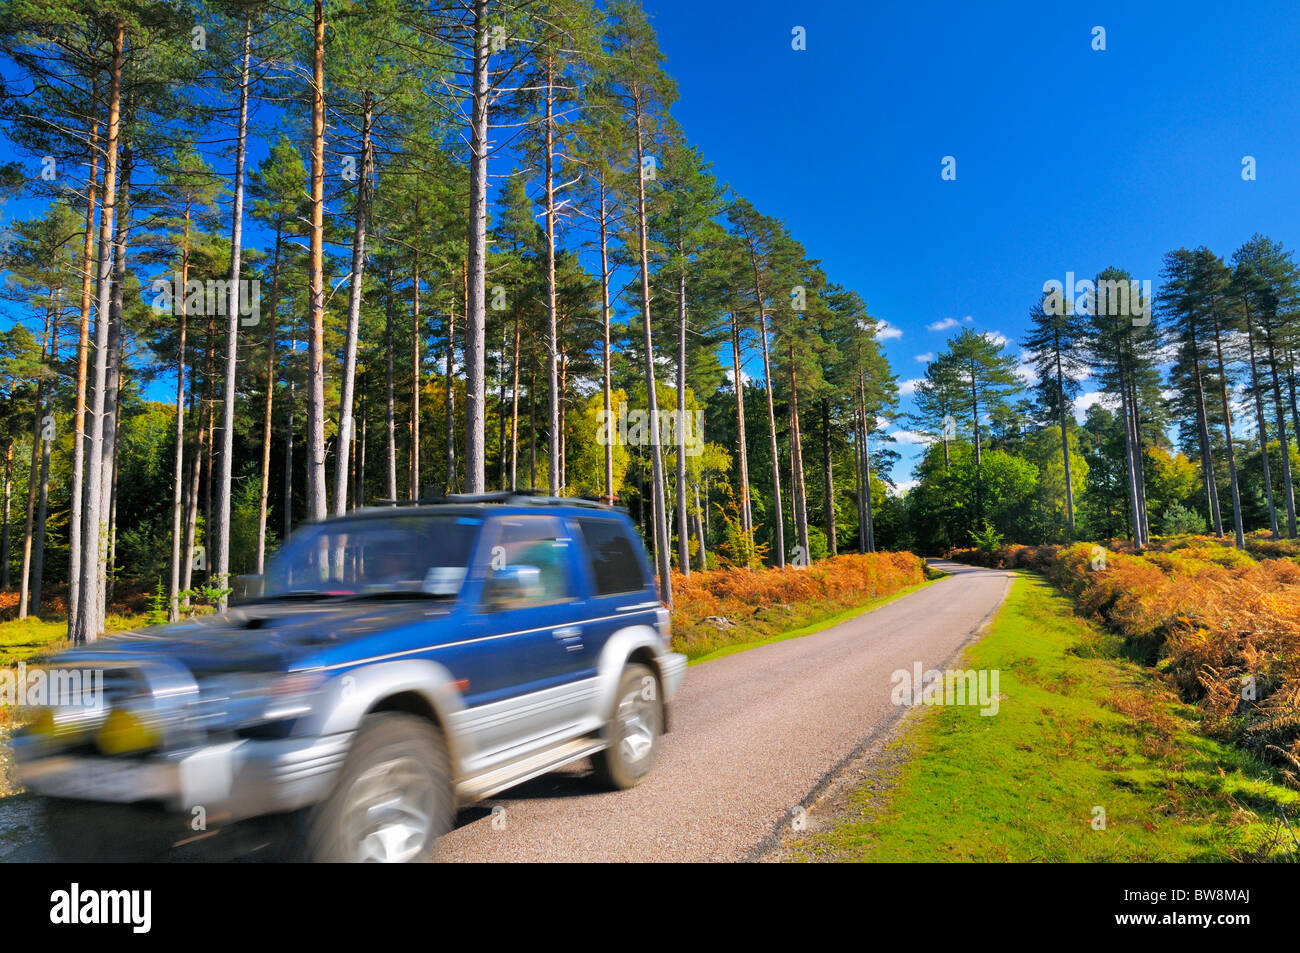 Vehicle passing through a scenic country road in the heart of the New Forest, Hampshire, UK - Stock Image